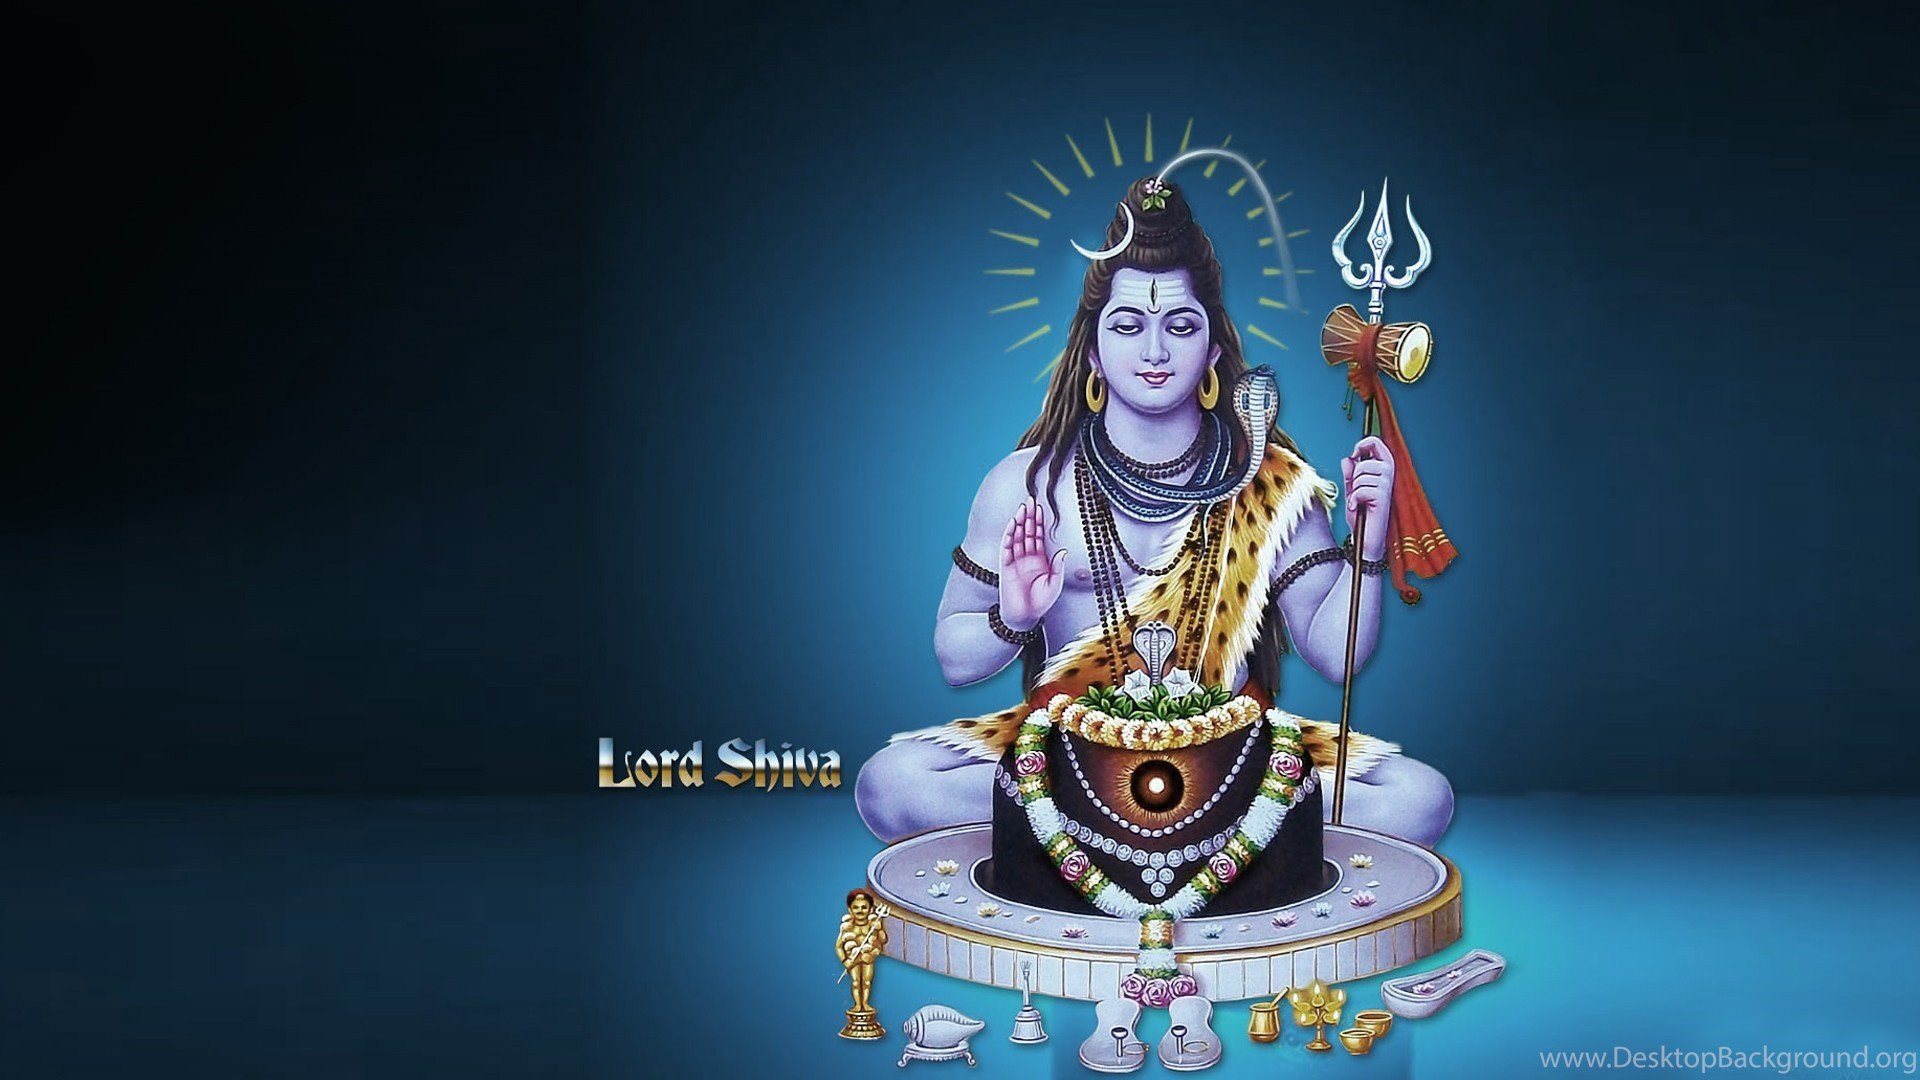 Lord Shiva Wallpapers Hd Free Download For Desktop: Lord Shiva New HD Wallpapers Download Desktop Background